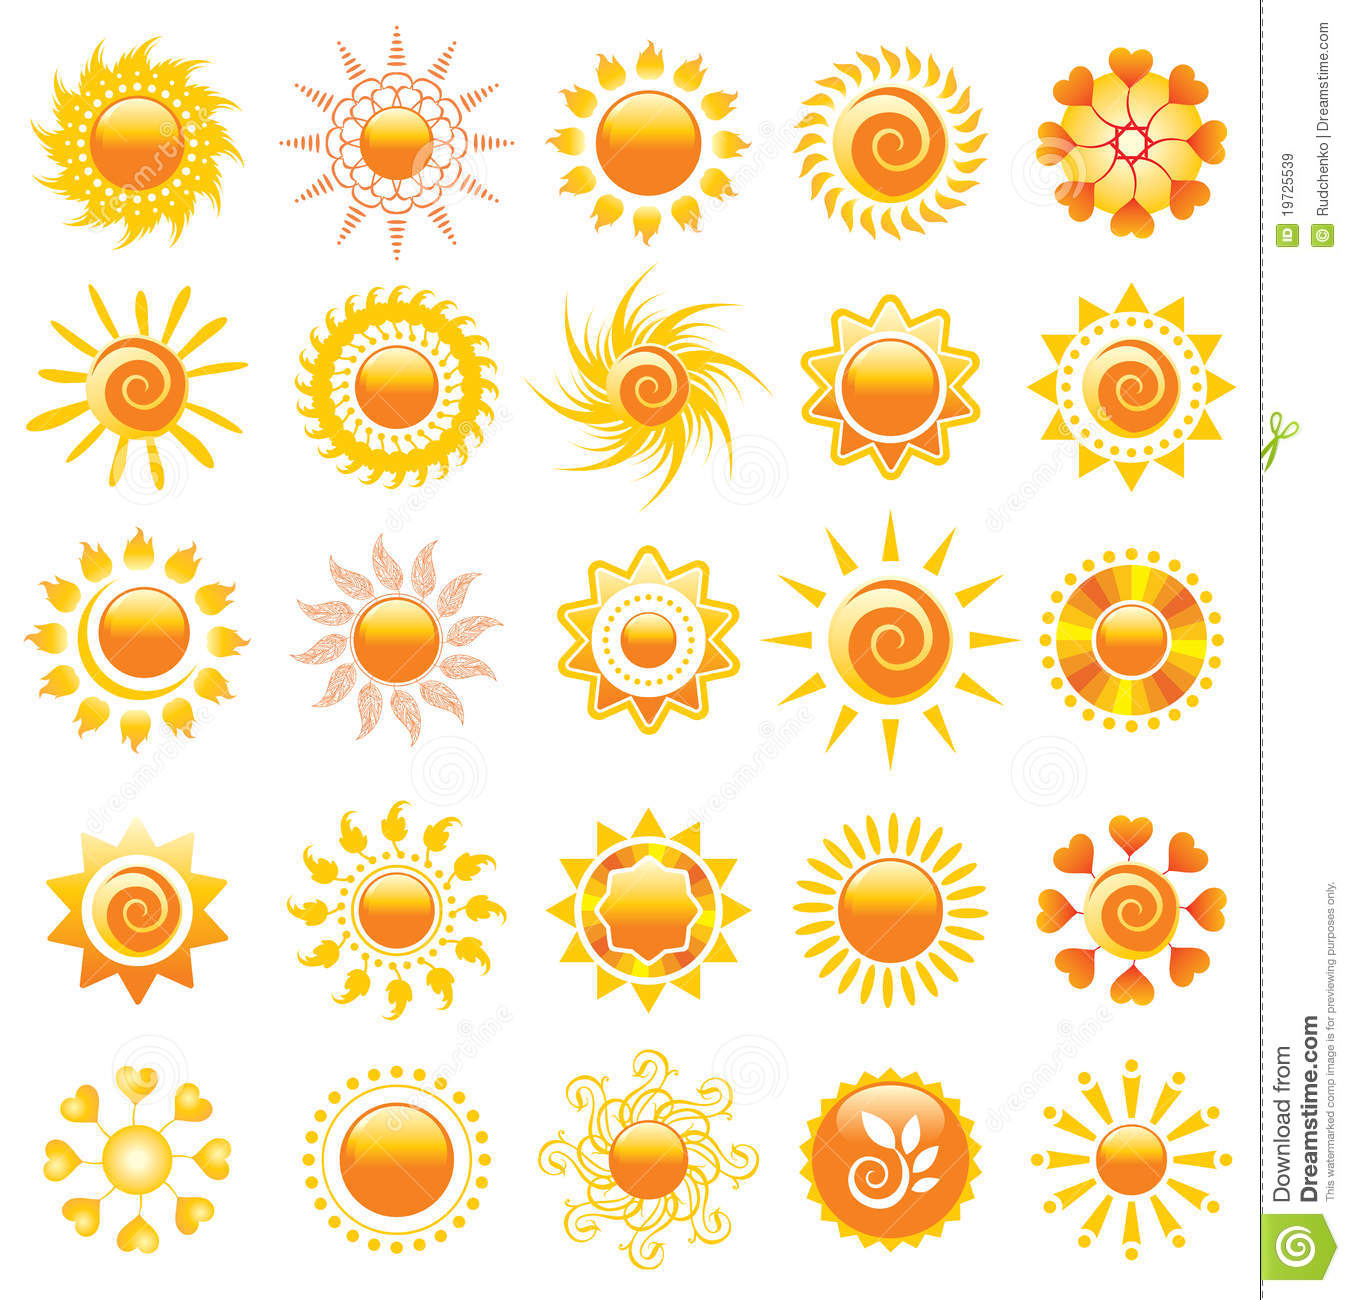 Sun Design Elements Stock Vector. Illustration Of Natural